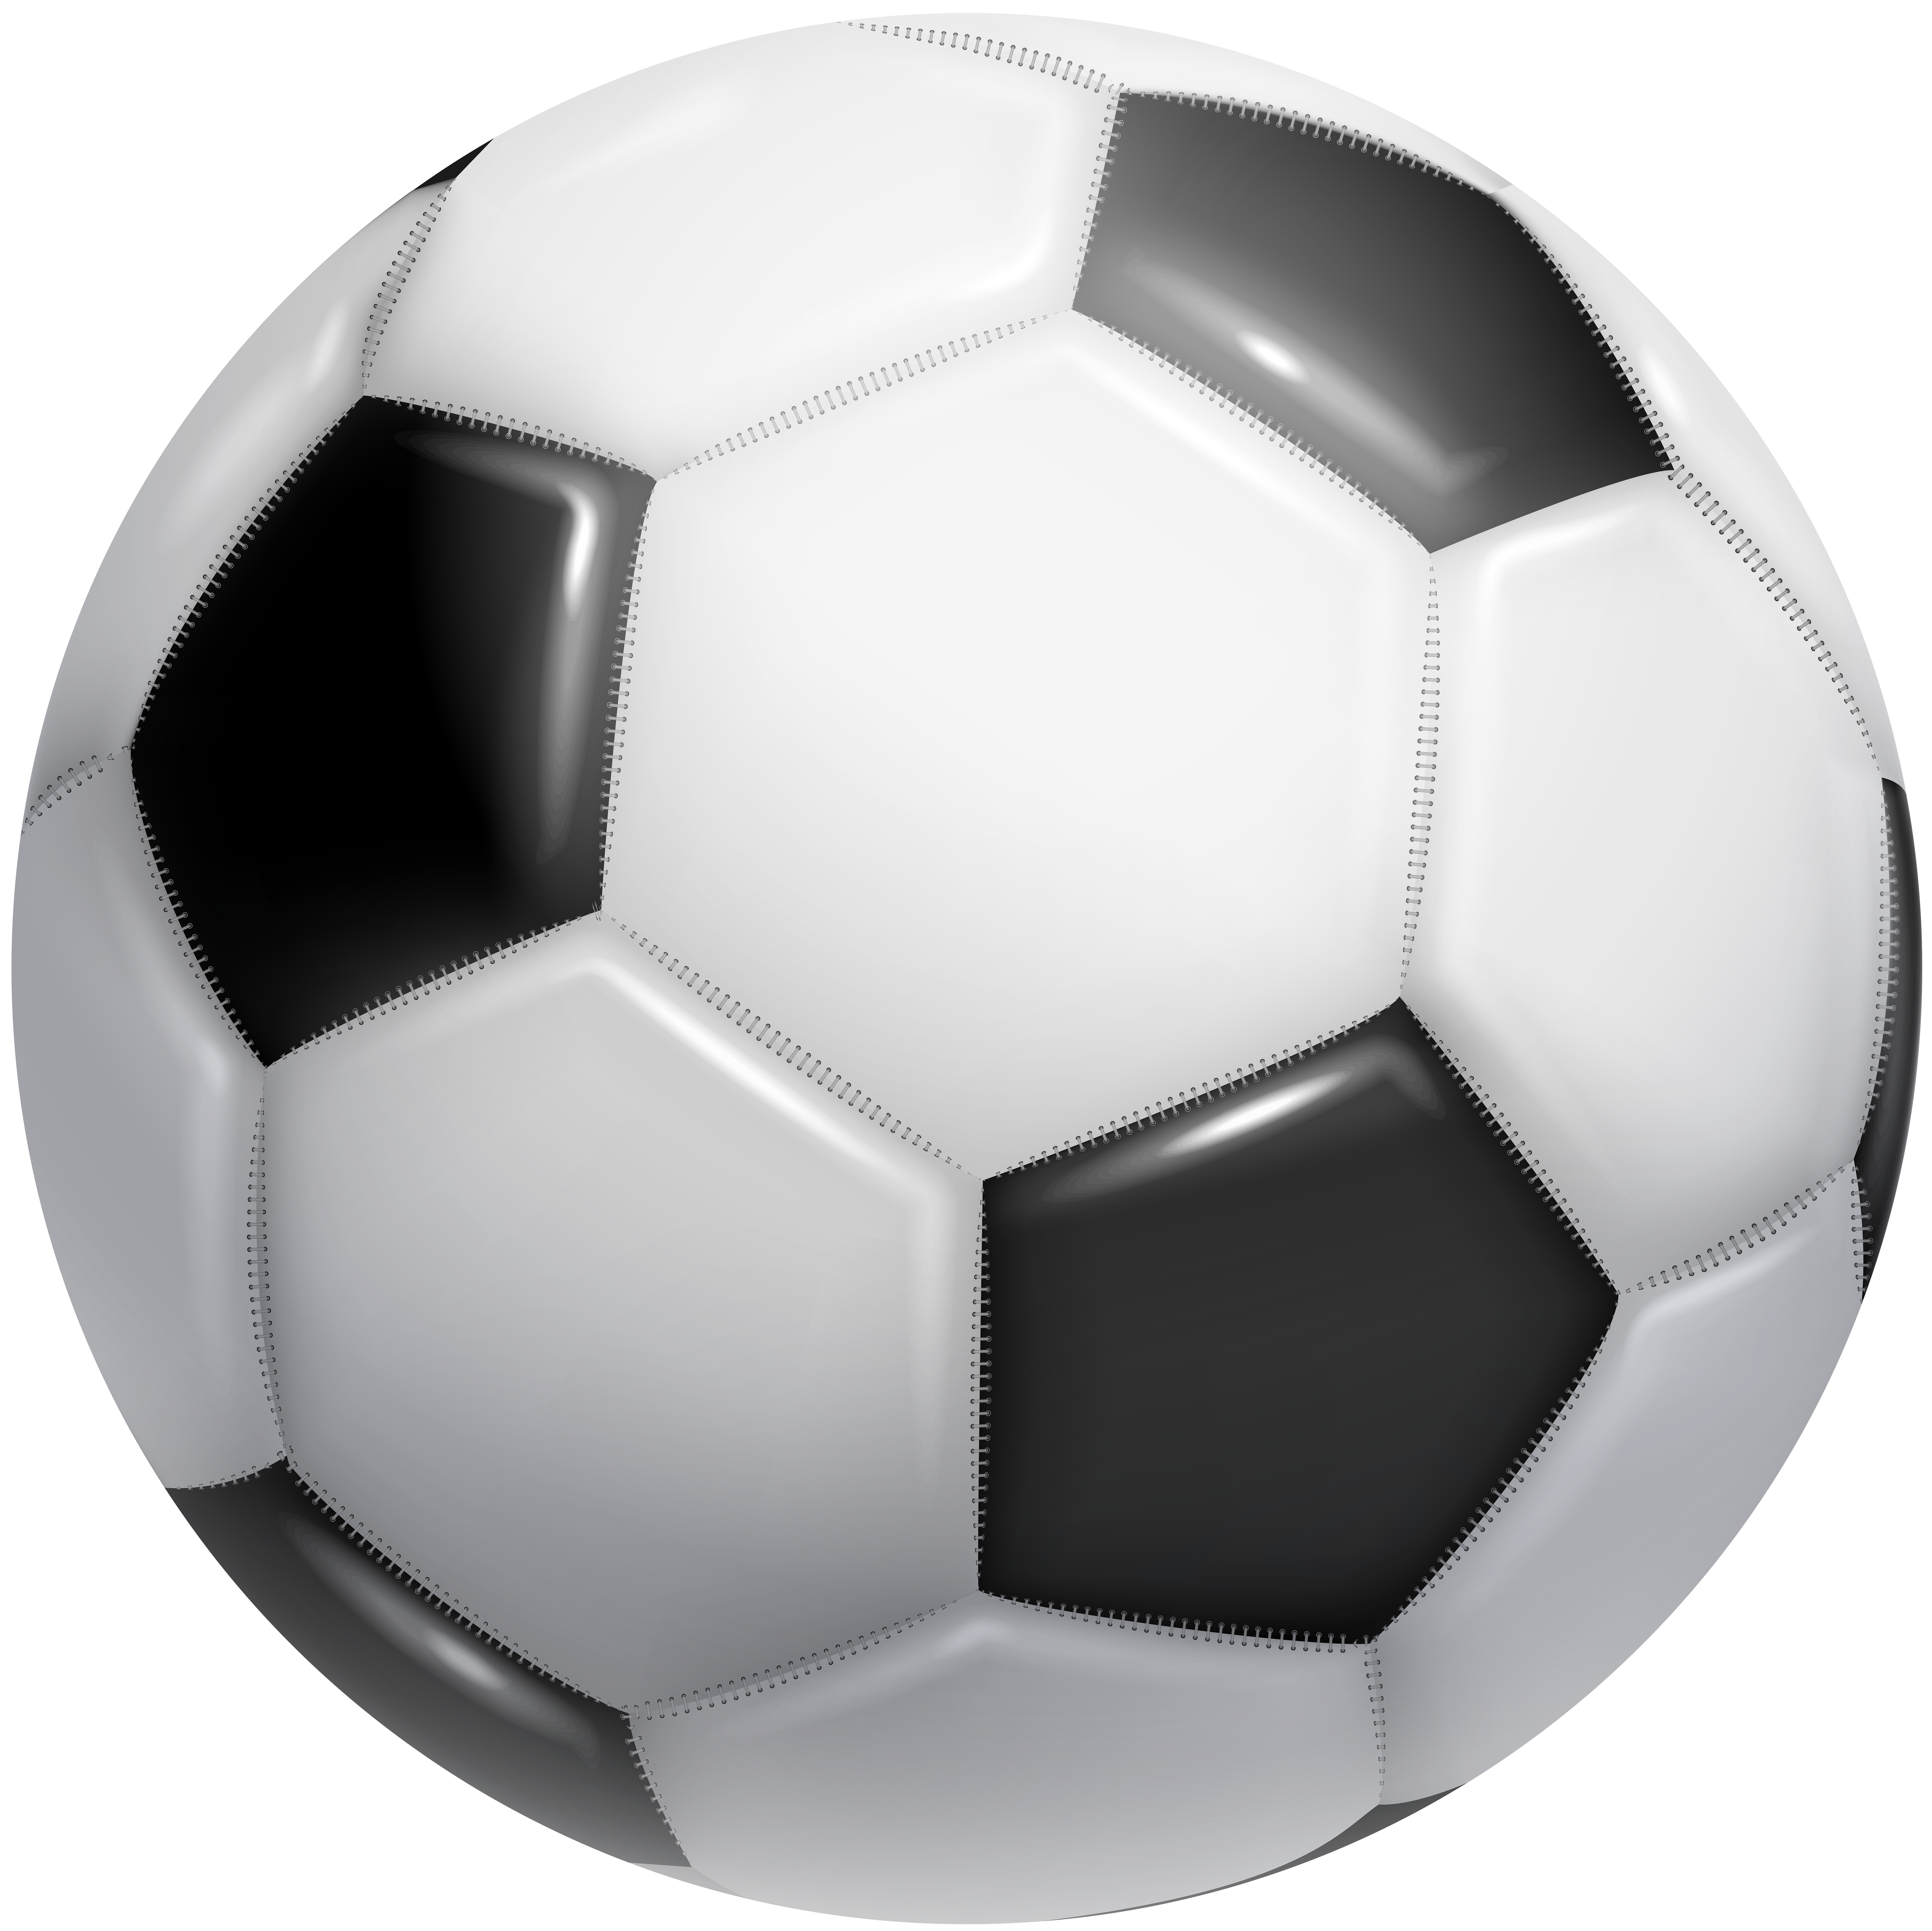 Halloween soccer clipart banner free stock Soccer Ball Clip Art Image | Gallery Yopriceville - High-Quality ... banner free stock